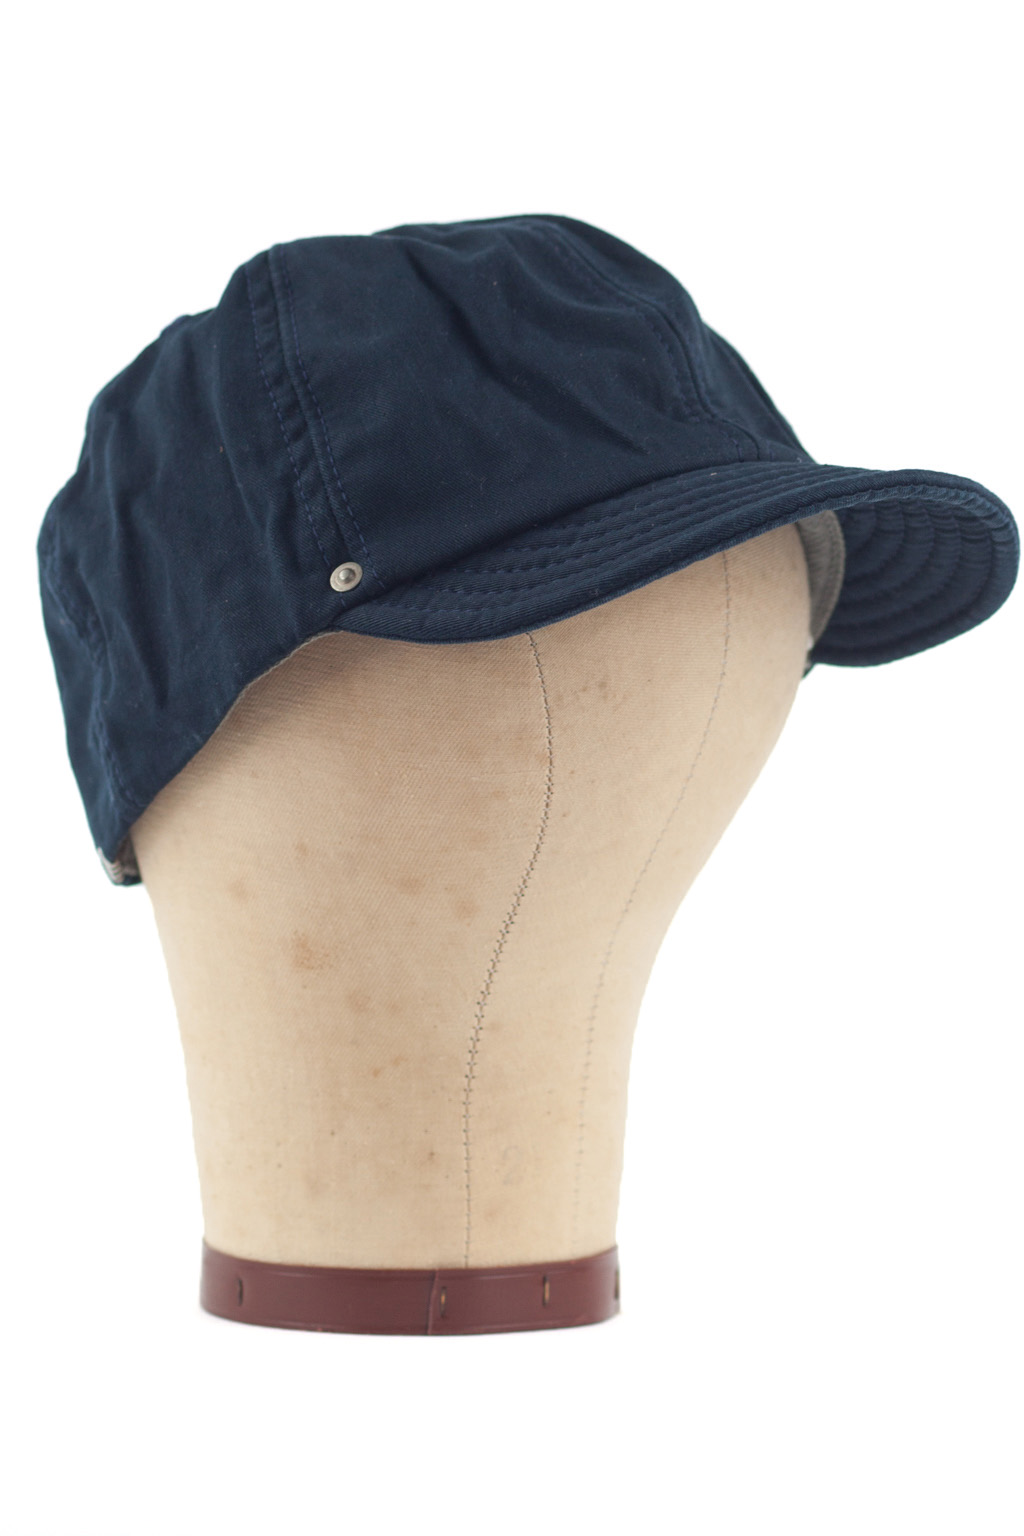 BBS x Decho Collaboration - Chino Ball Cap - Navy